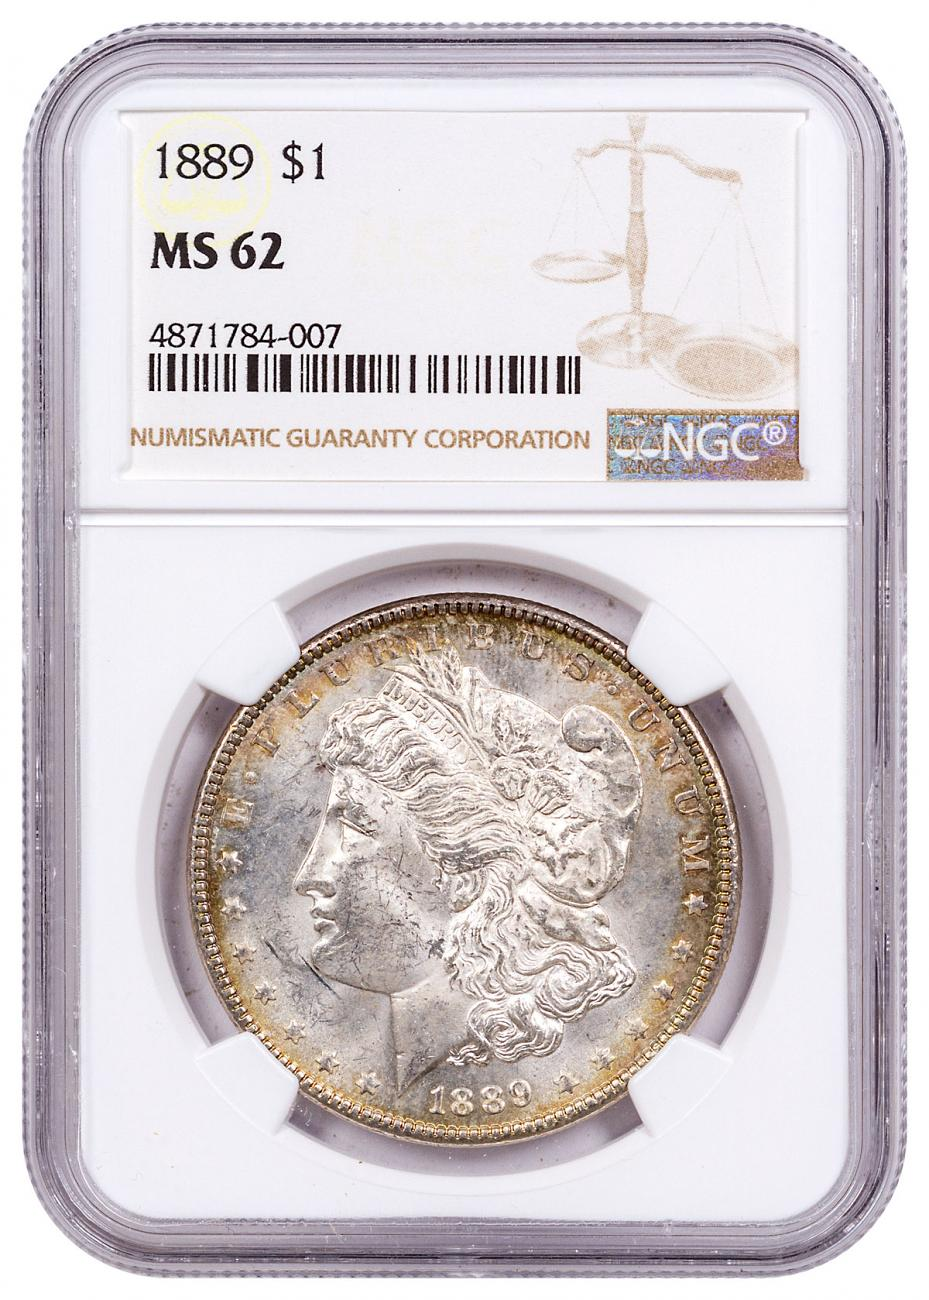 1889 Morgan Silver Dollar Toned NGC MS62 CPCR 4007